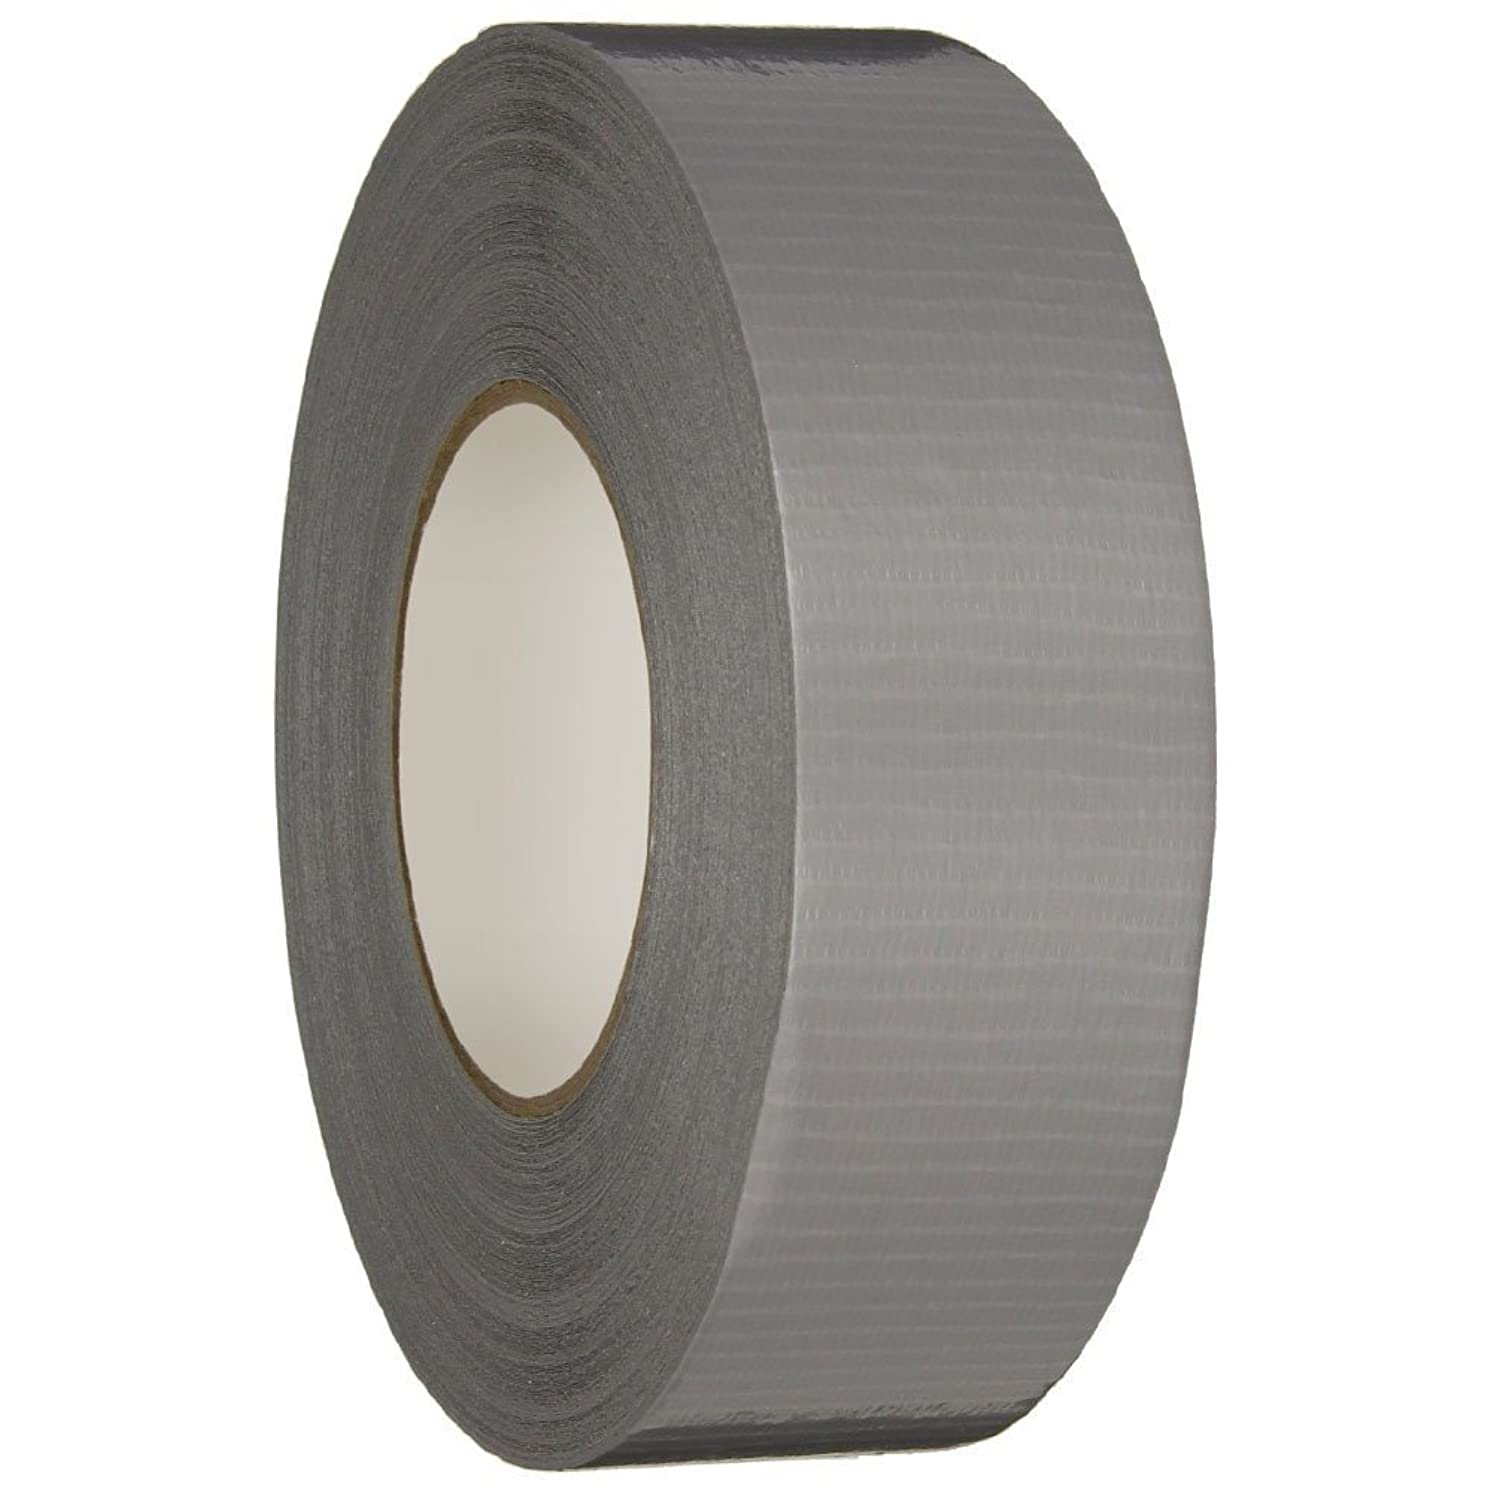 Nashua Duct Tape 12 Mil Thick 2